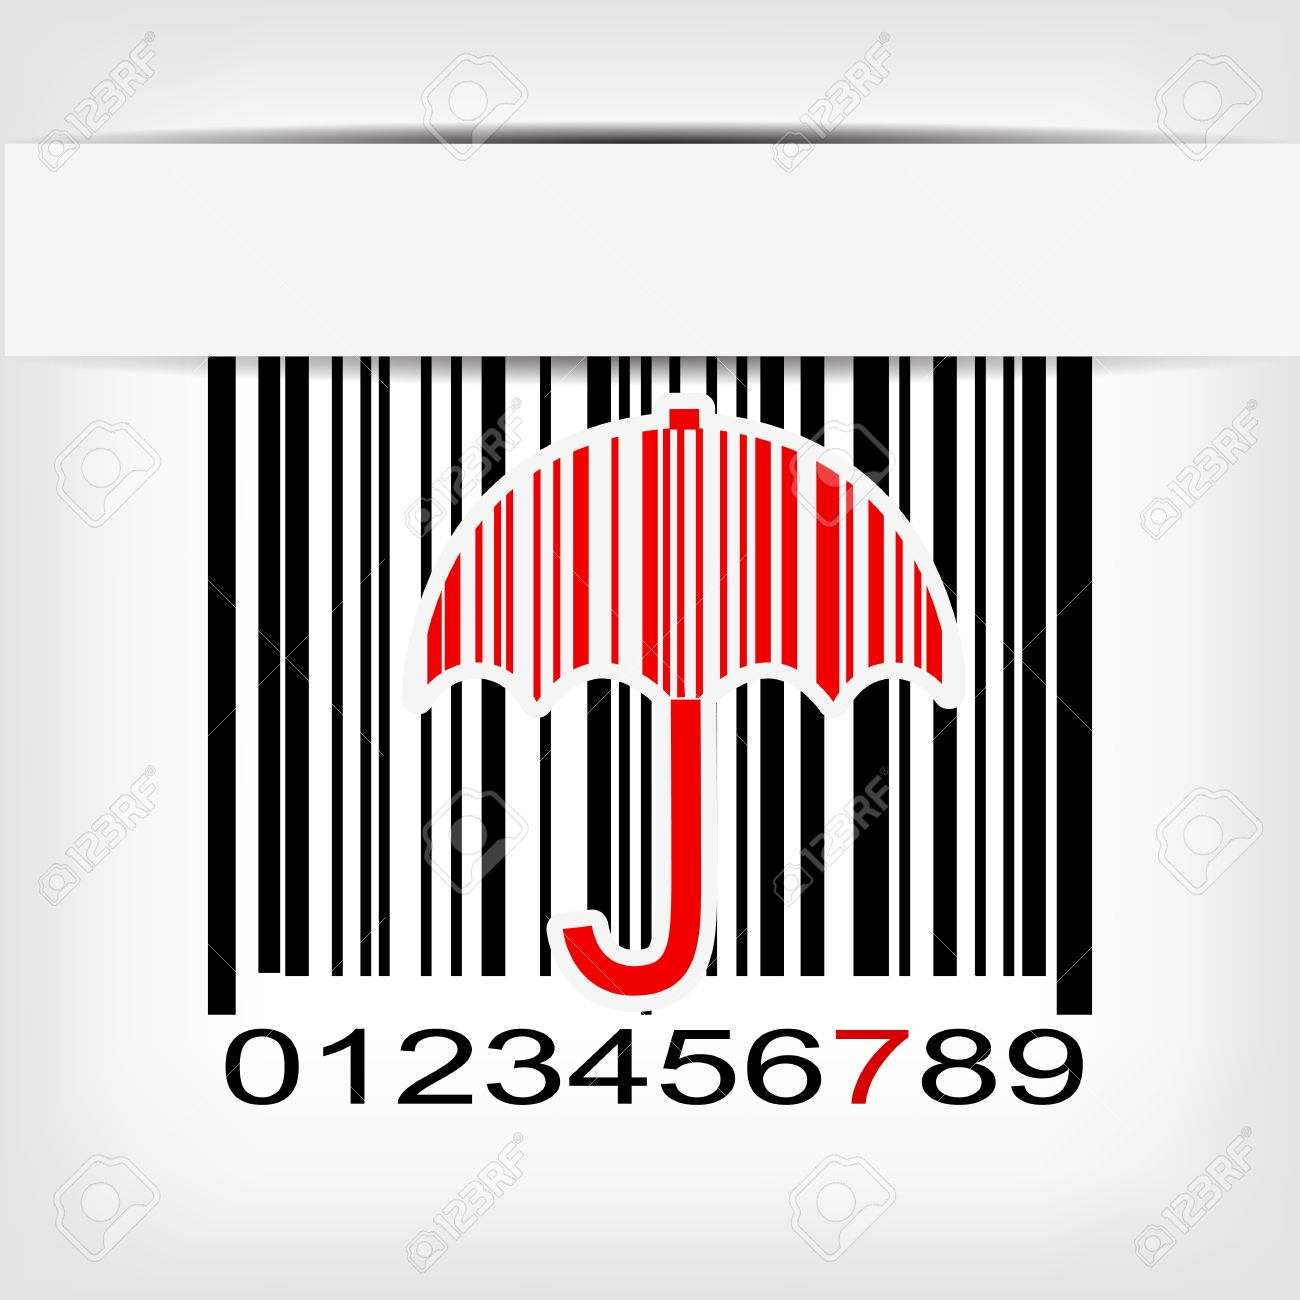 Bar Code Image With Red Strip Illustration Royalty Free Cliparts.